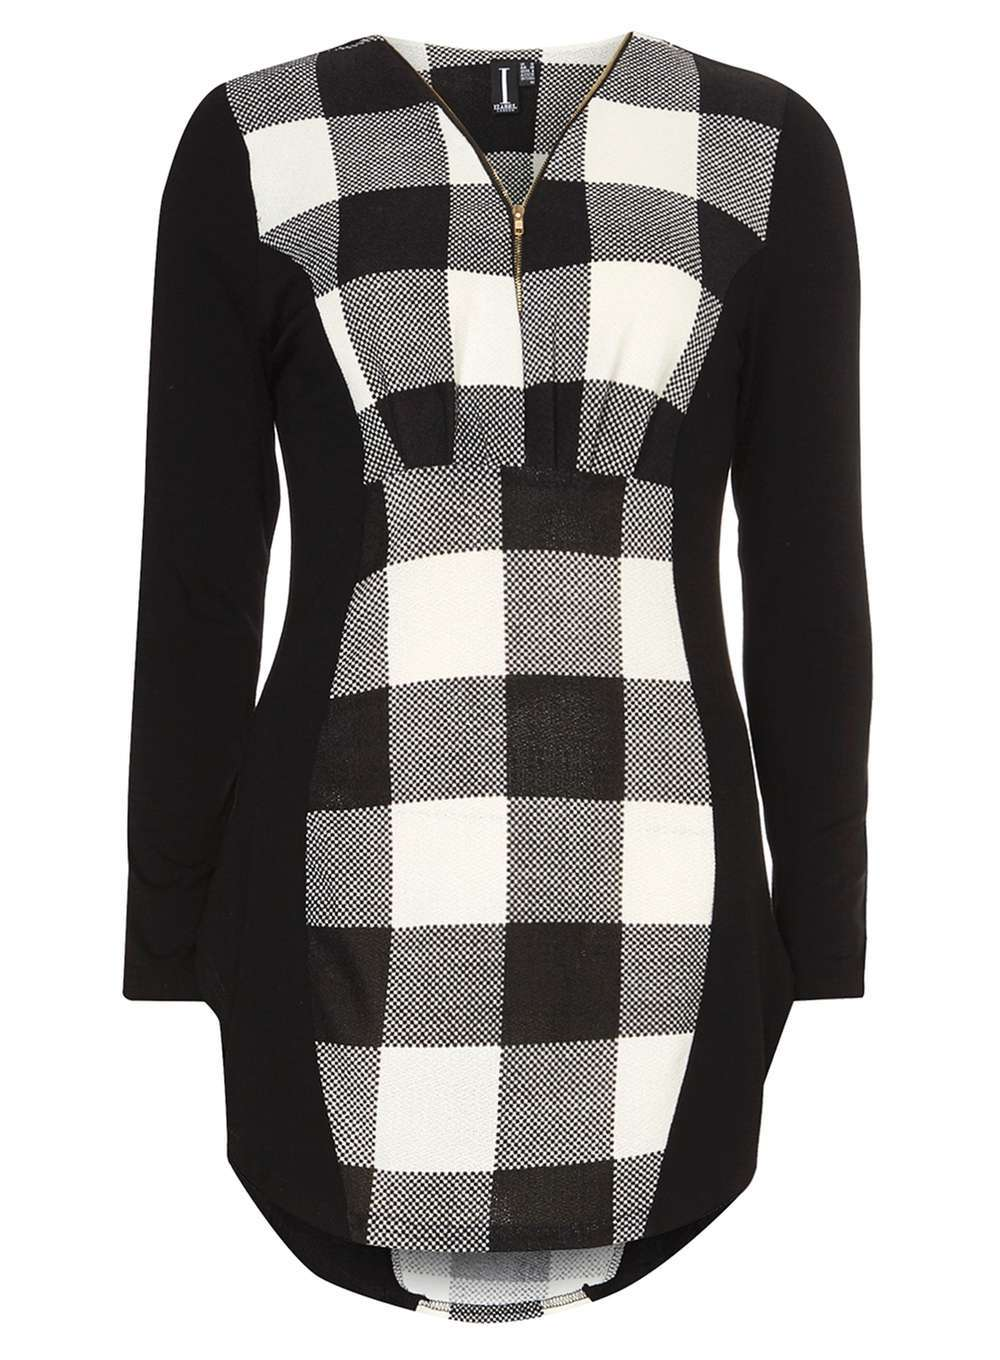 Womens **Izabel London Black And White Top Black - neckline: v-neck; pattern: checked/gingham; length: below the bottom; secondary colour: white; predominant colour: black; occasions: casual; style: top; fibres: polyester/polyamide - stretch; fit: body skimming; sleeve length: long sleeve; sleeve style: standard; pattern type: fabric; pattern size: standard; texture group: jersey - stretchy/drapey; multicoloured: multicoloured; season: a/w 2016; wardrobe: highlight; embellishment location: bust